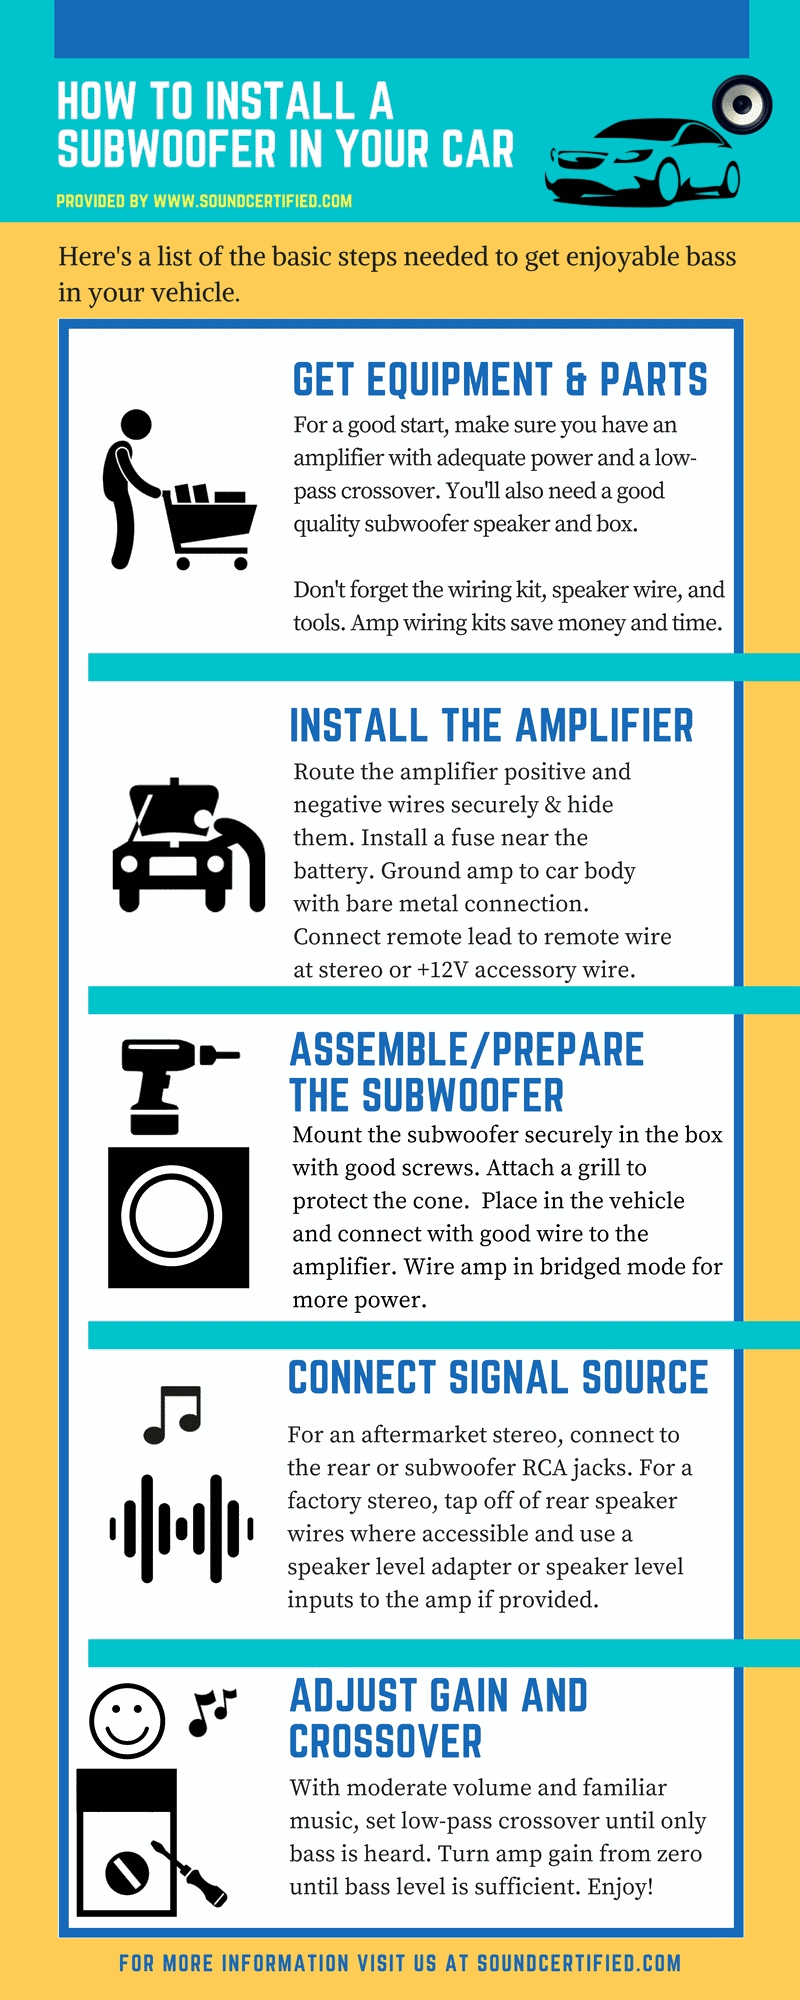 How To Install A Subwoofer And Amp In Your Car The Diy Guitar Speakers Explained Basics Series Parallel Wiring Infographic For